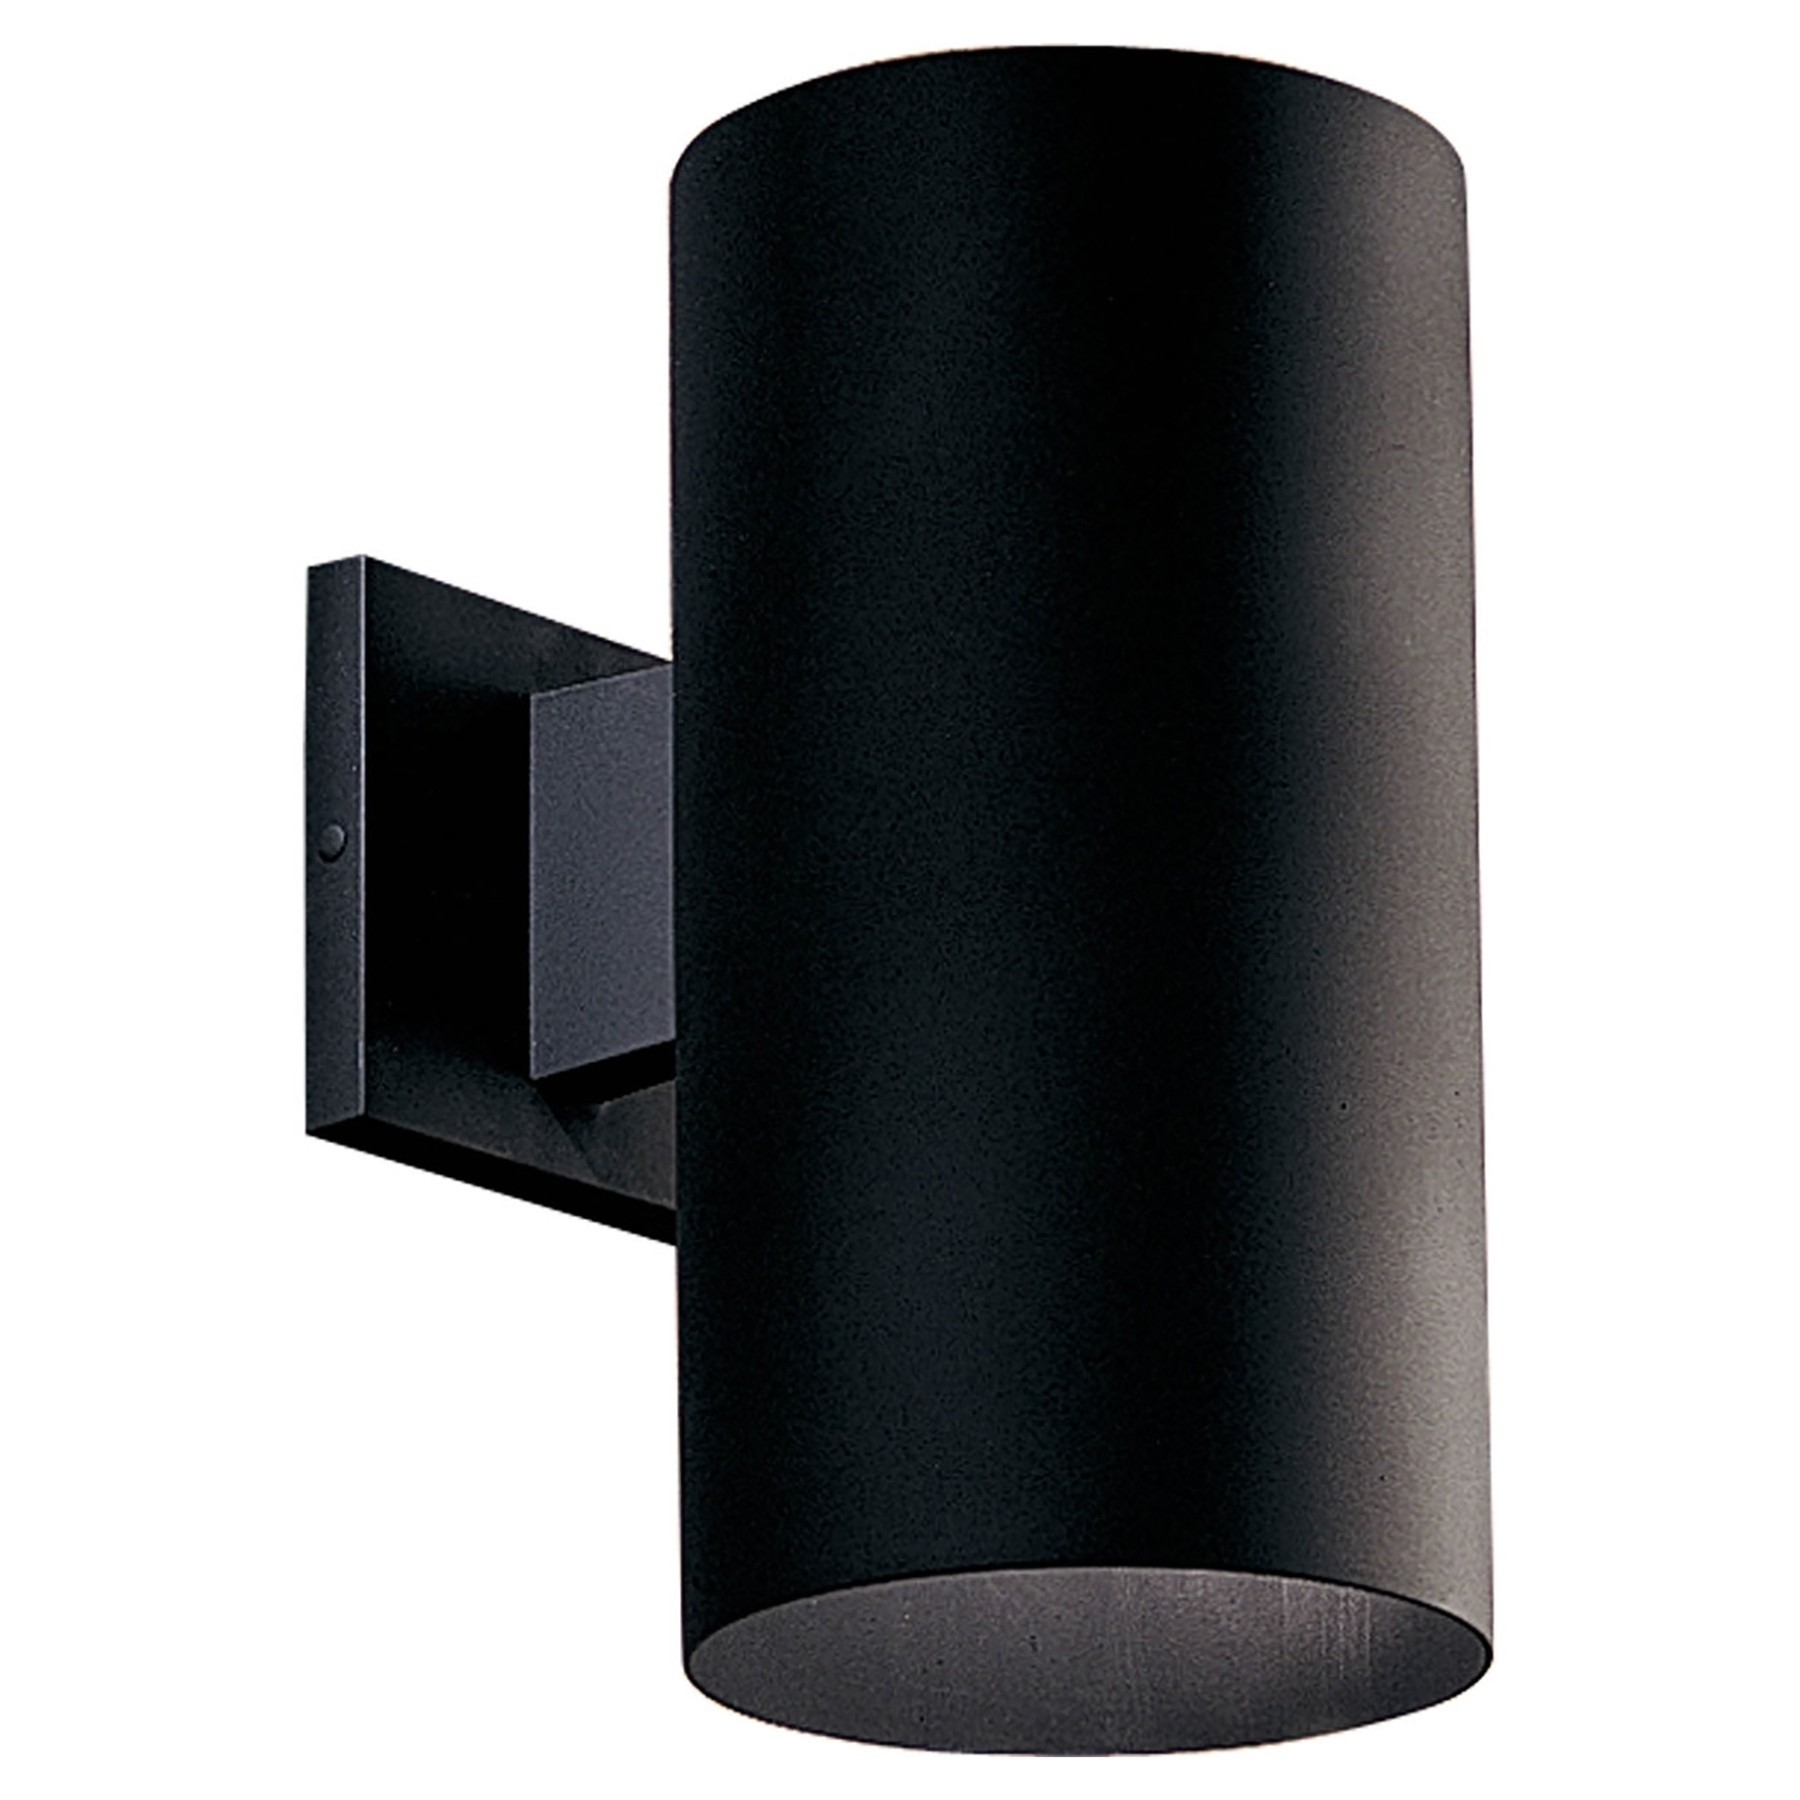 Led Integrated Outdoor Aluminum Wall Light – Dimmable – Dark Sky Pertaining To Dark Sky Outdoor Wall Lighting (View 5 of 15)